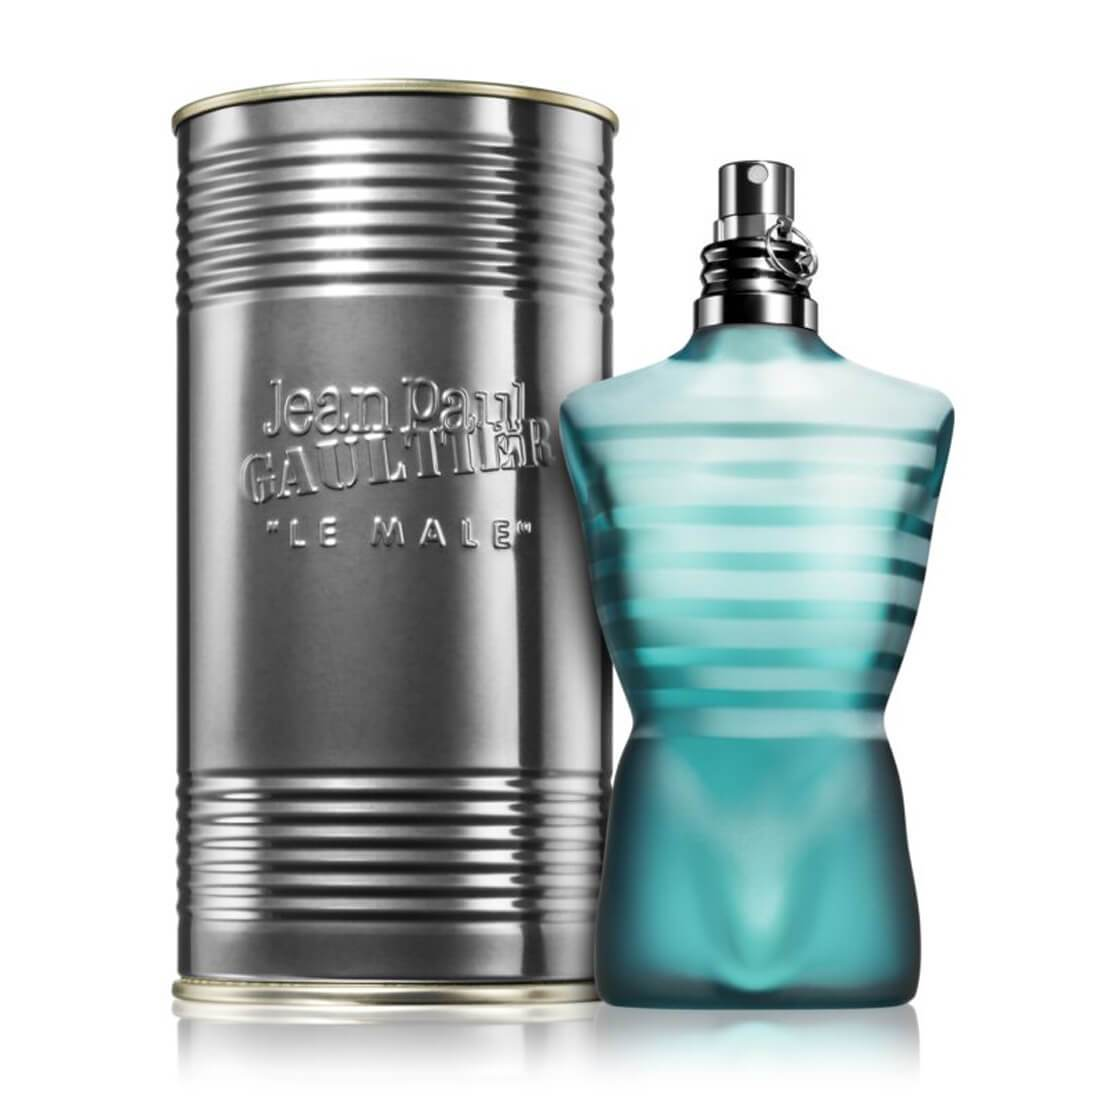 Jean Paul Gaultier Le Male Eau De Toilette For Men - 125ml